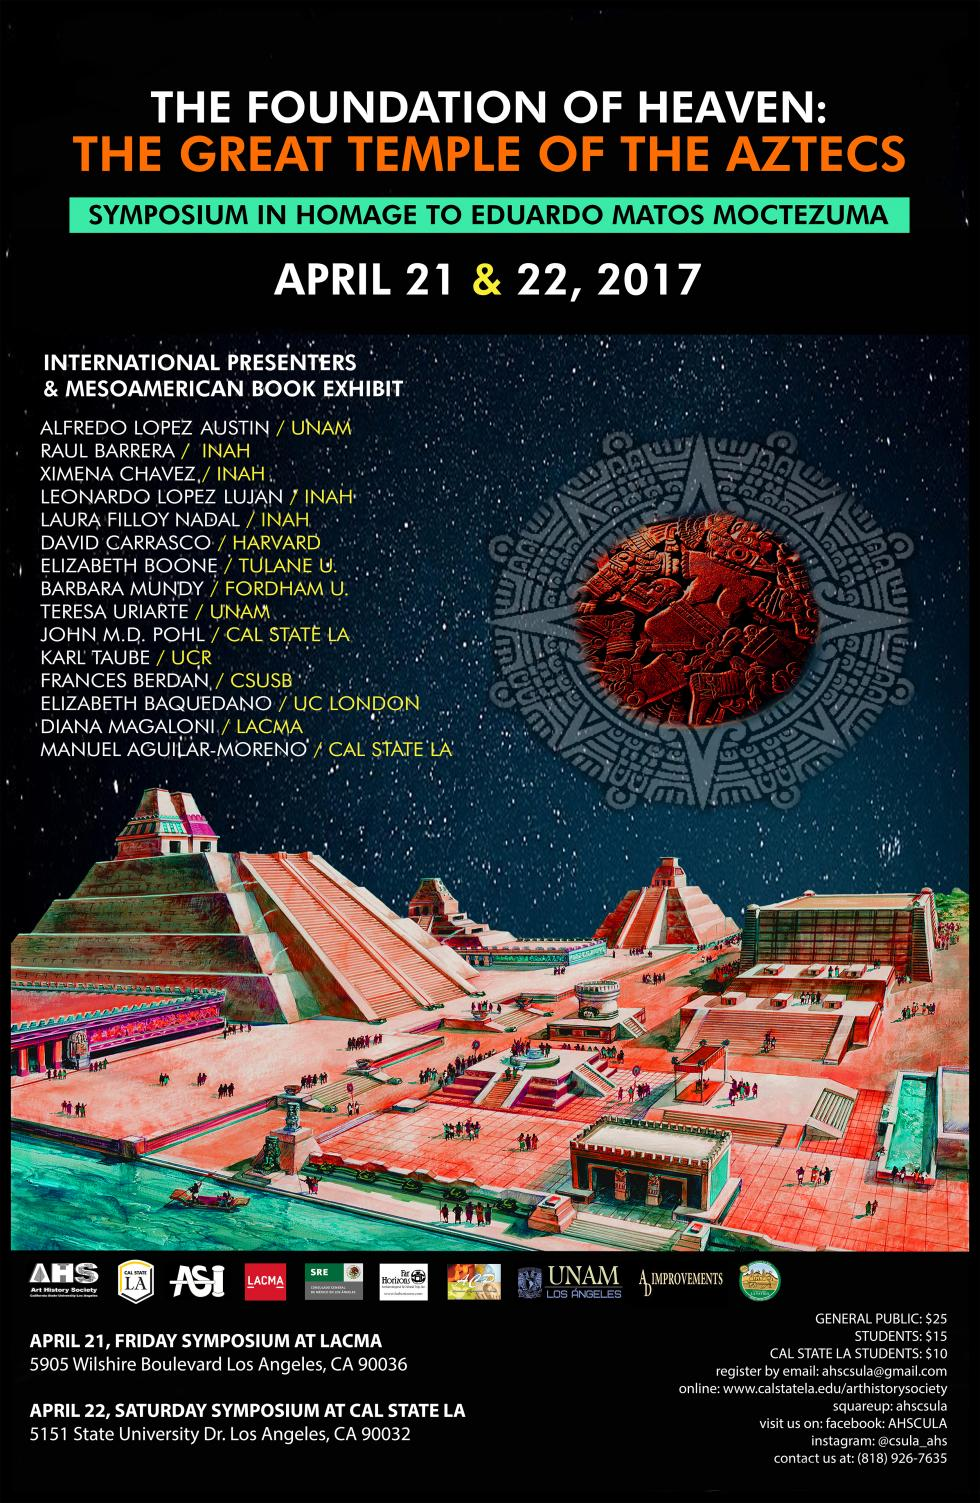 The foundation of heaven the great temple of the aztecs the art this mesoamerican symposium in homage to eduardo matos moctezuma organized by the art history society of california state university los angeles and los sciox Image collections